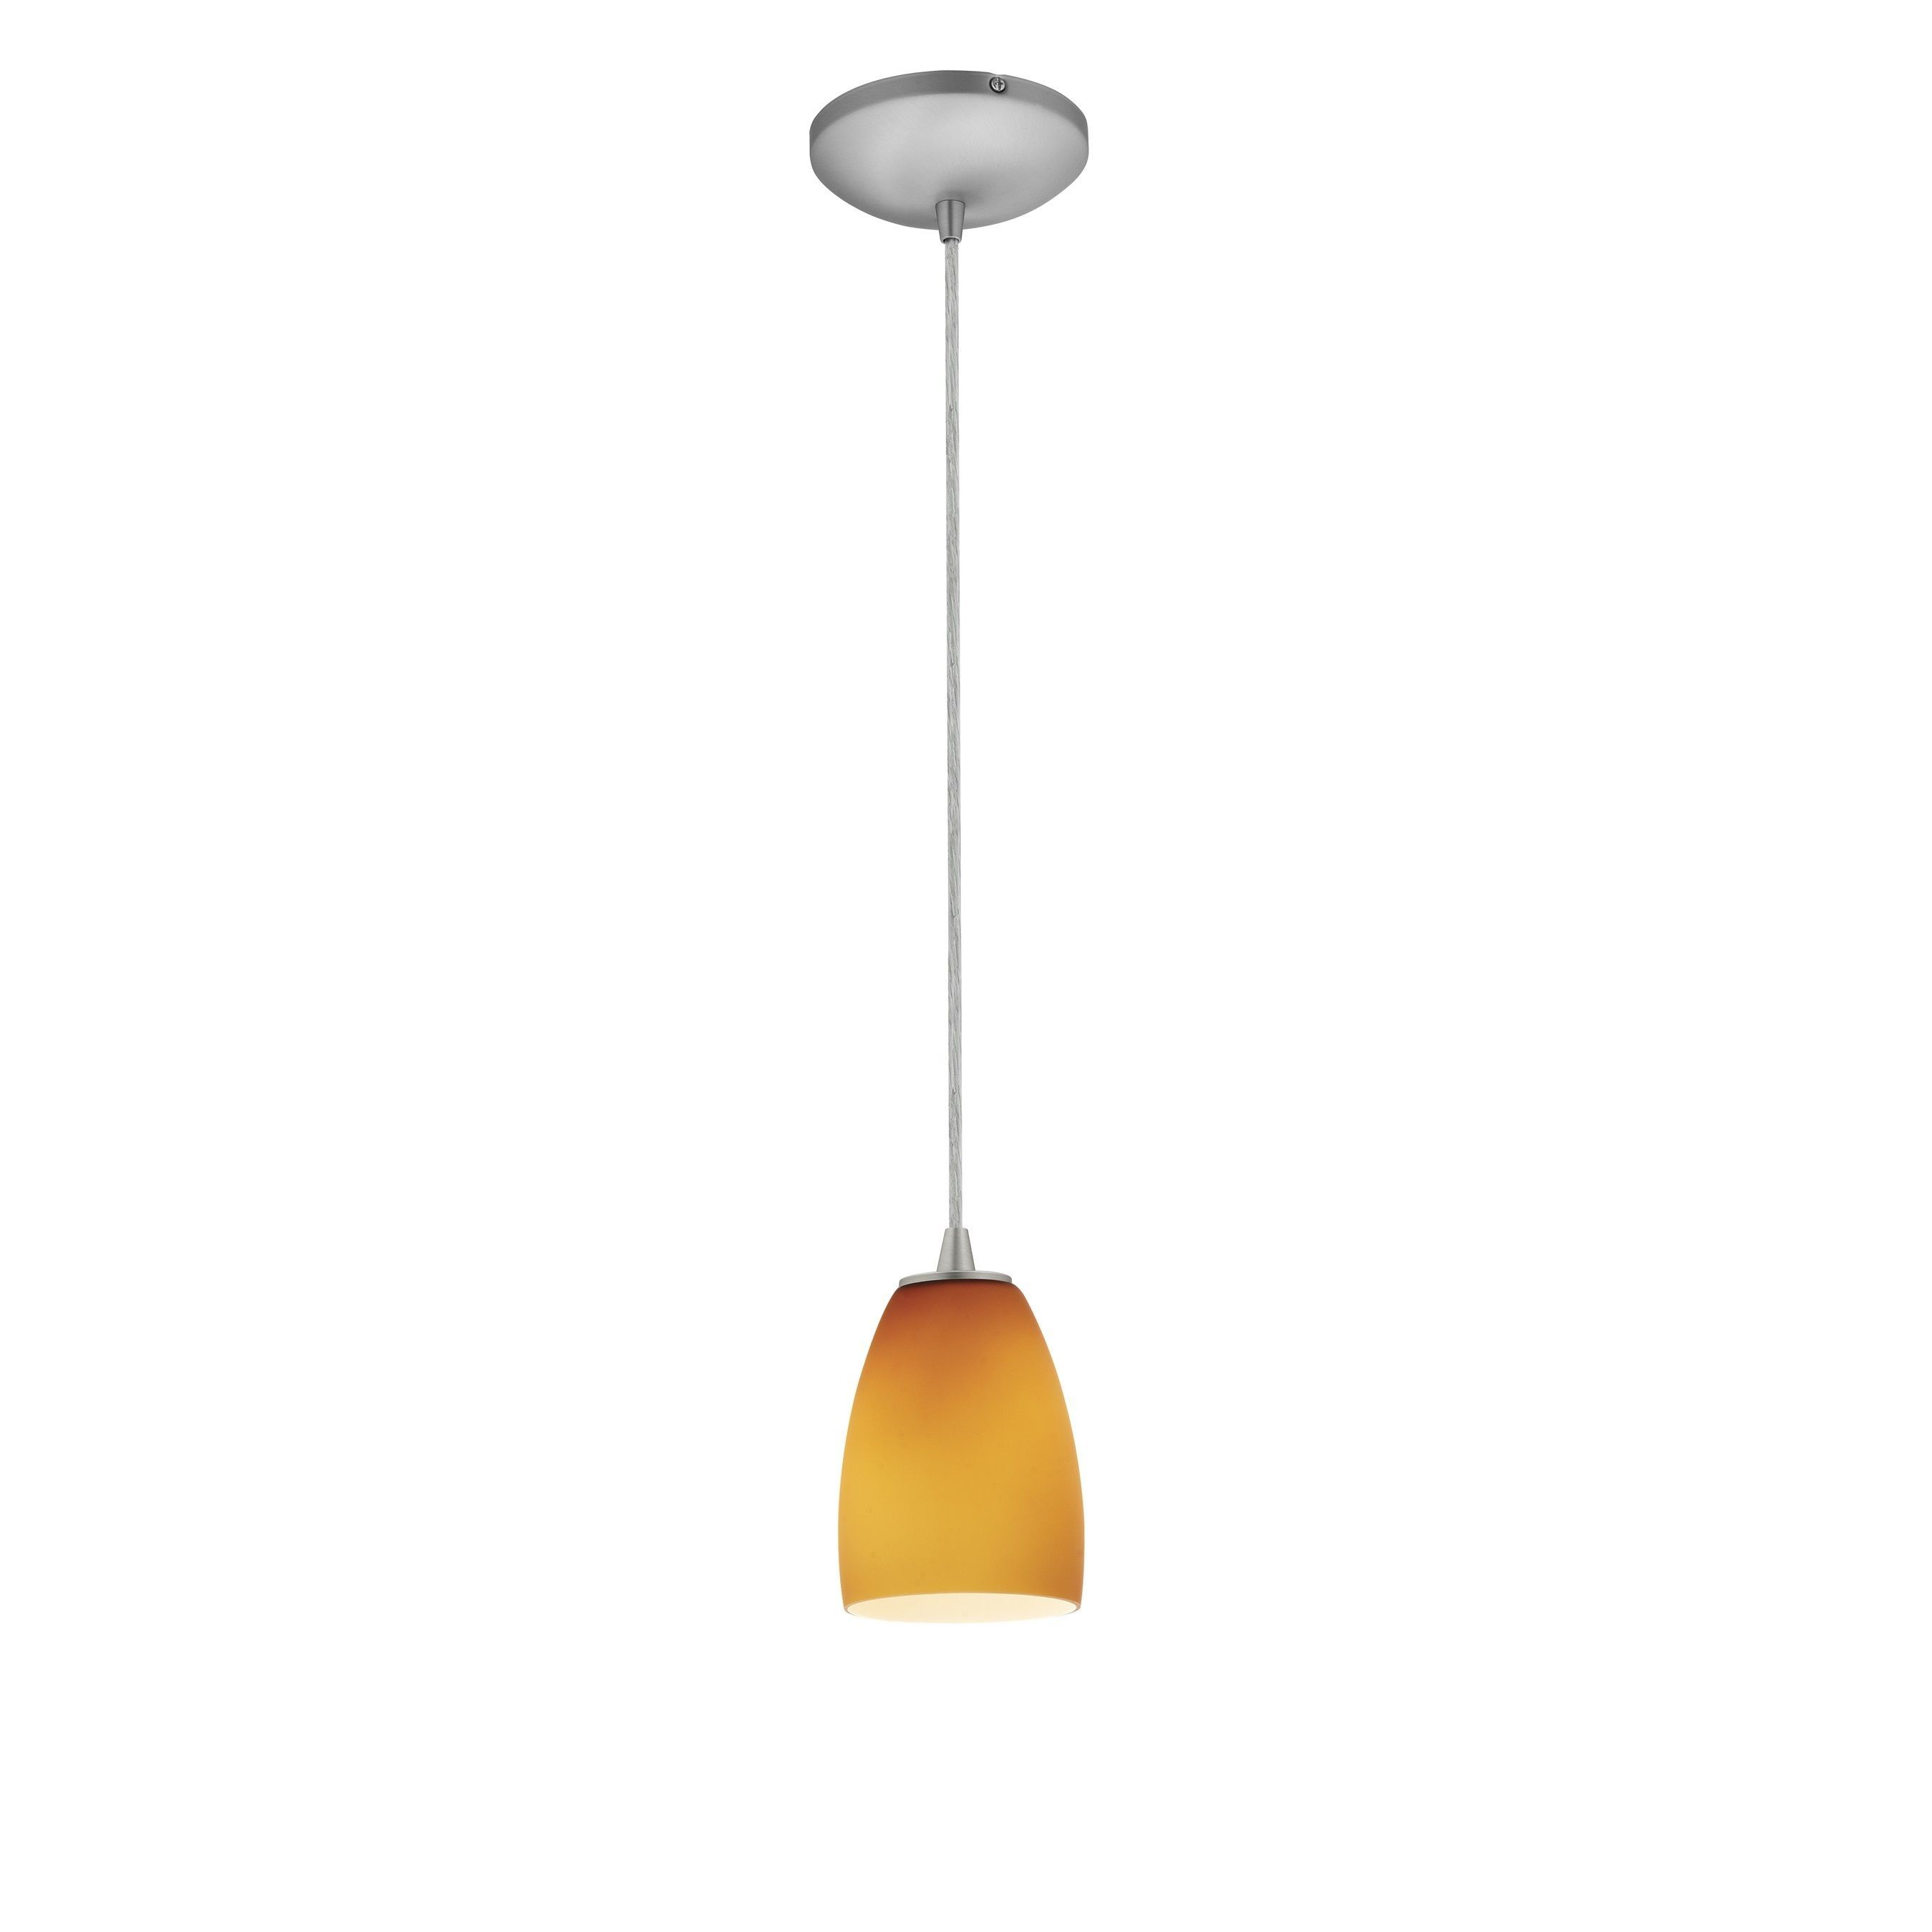 Access Lighting Sherry Steel Integrated LED Cord Pendant, Amber Shade (Brushed Steel, Amber), Brown (Glass)